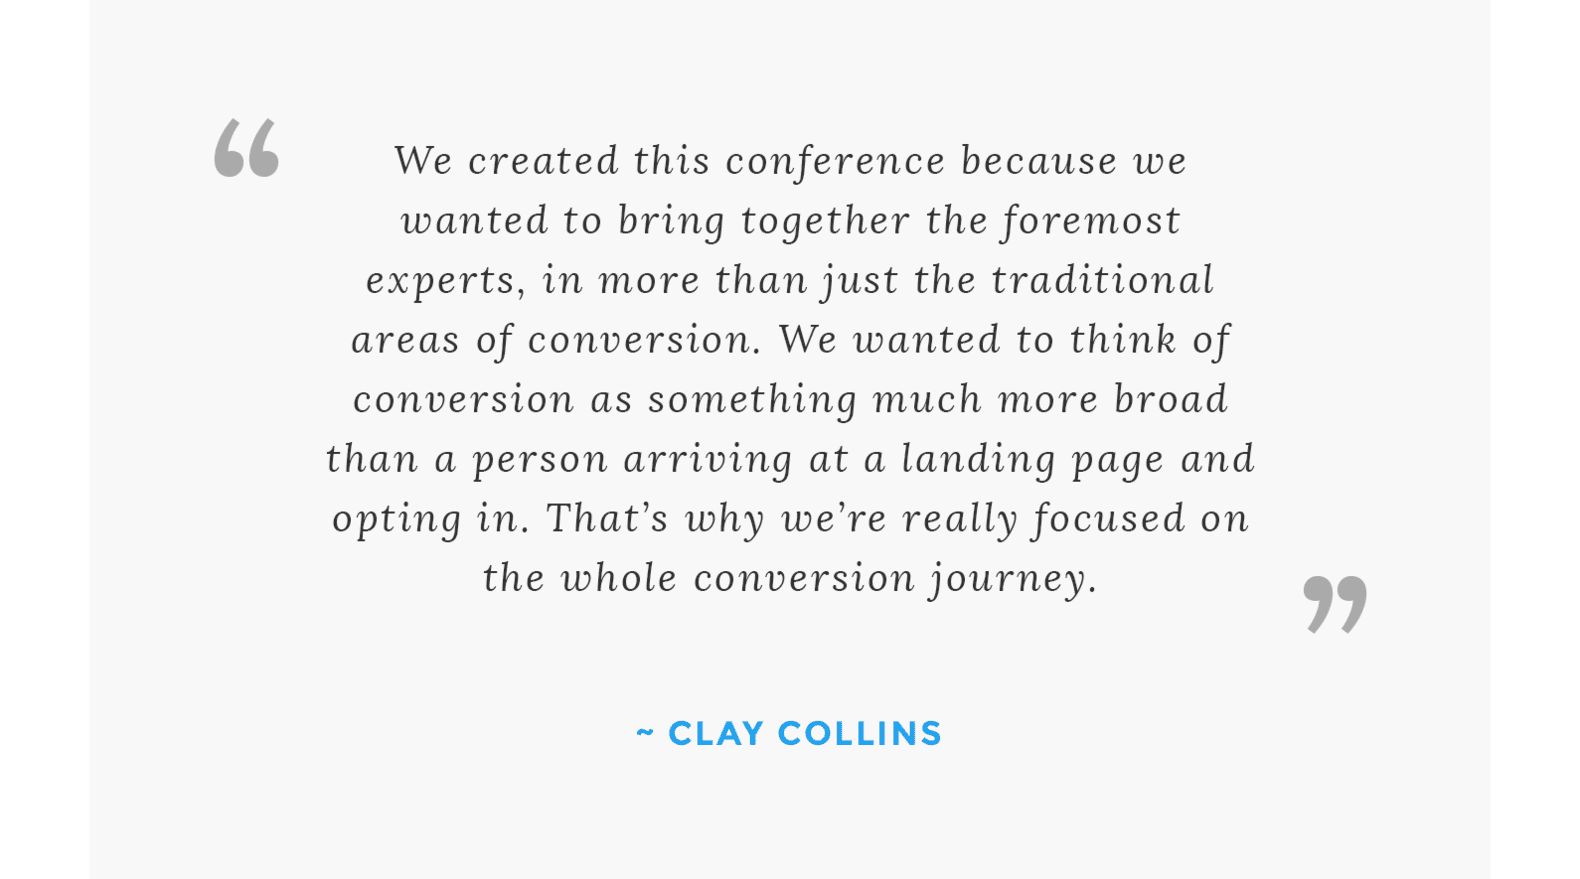 """We created this conference because we wanted to bring together the foremost experts, in more than just the traditional areas of conversion. We wanted to think of conversion as something much more broad than a person arriving at a landing page and opting in. That's why we're really focused on the whole conversion journey throughout the conference."" - Clay Collins"